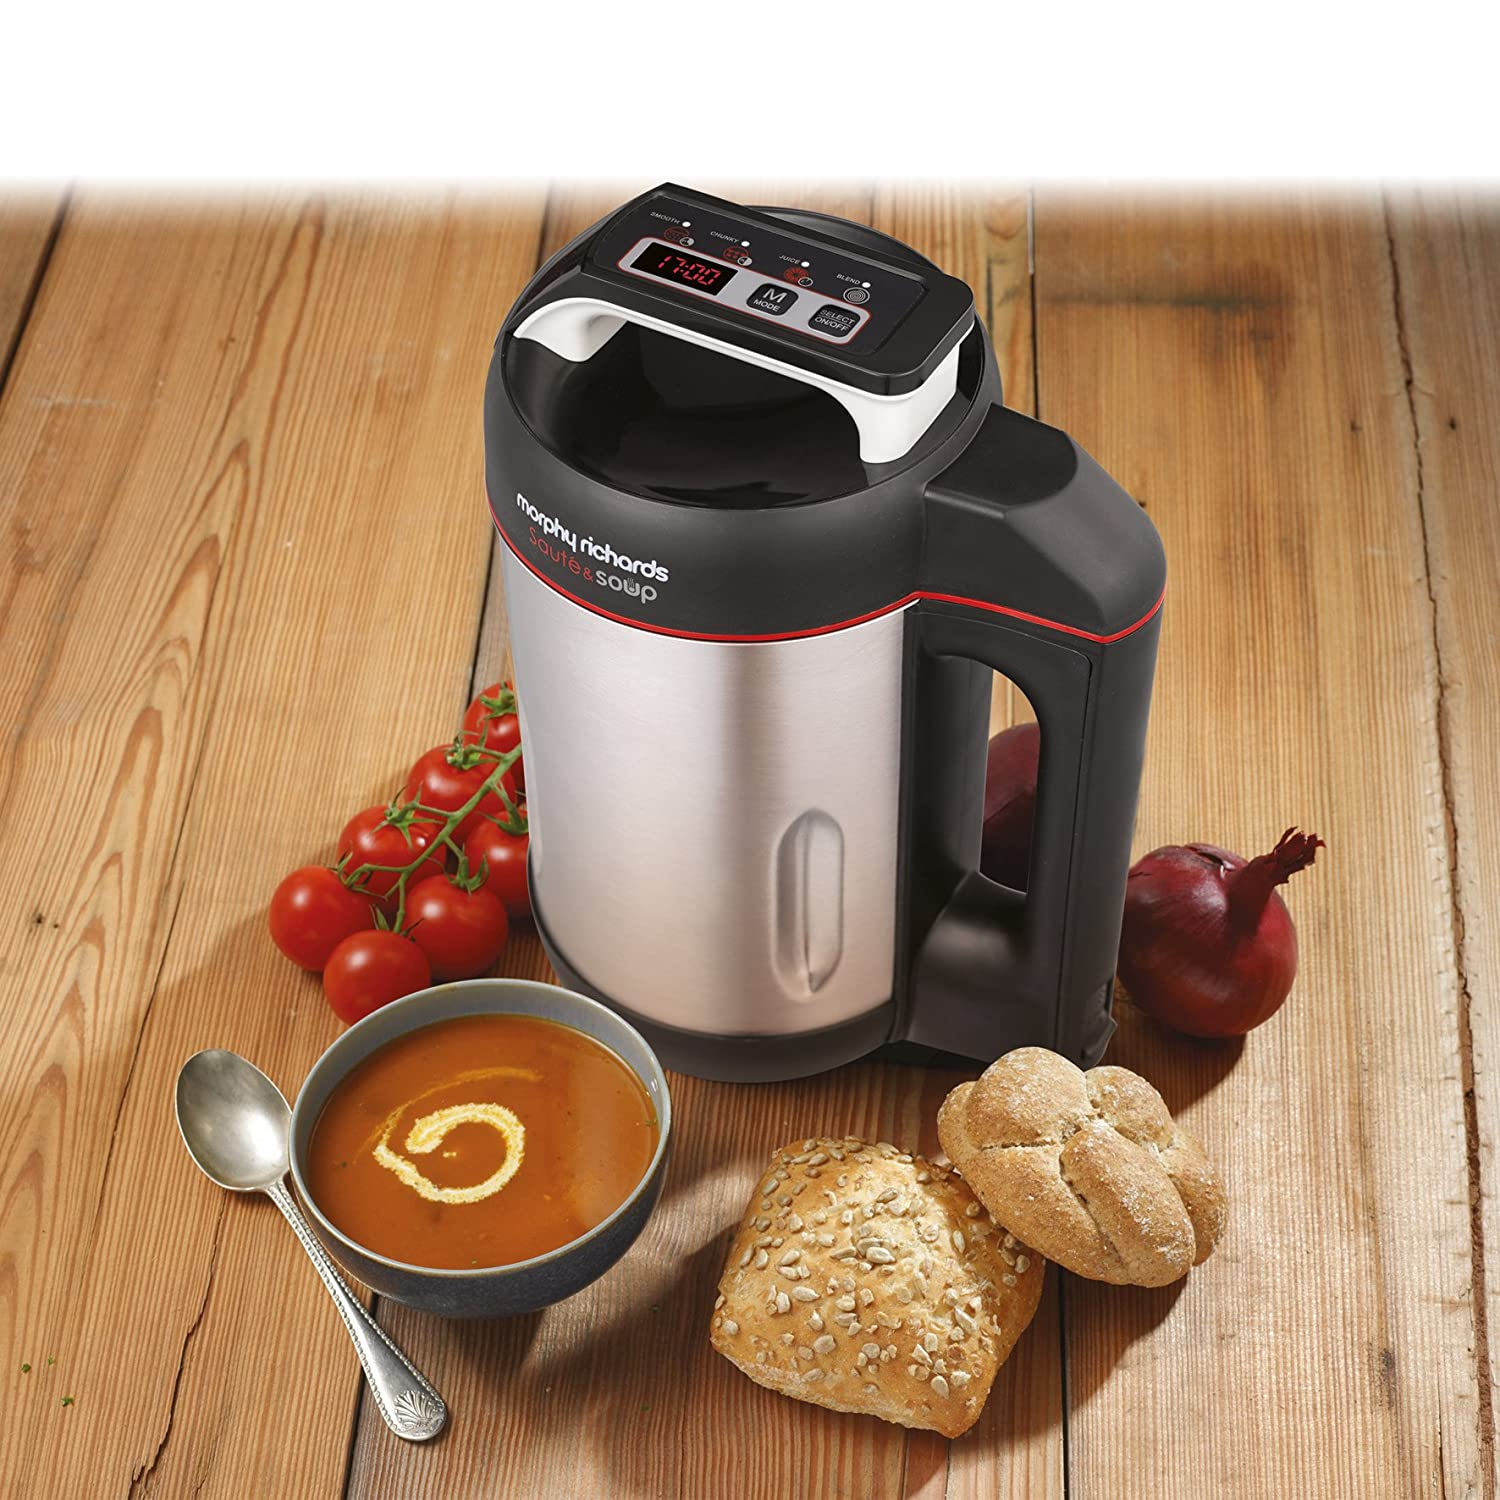 If you're looking for the best soup maker in the UK right now, take a look at our list of the top options.